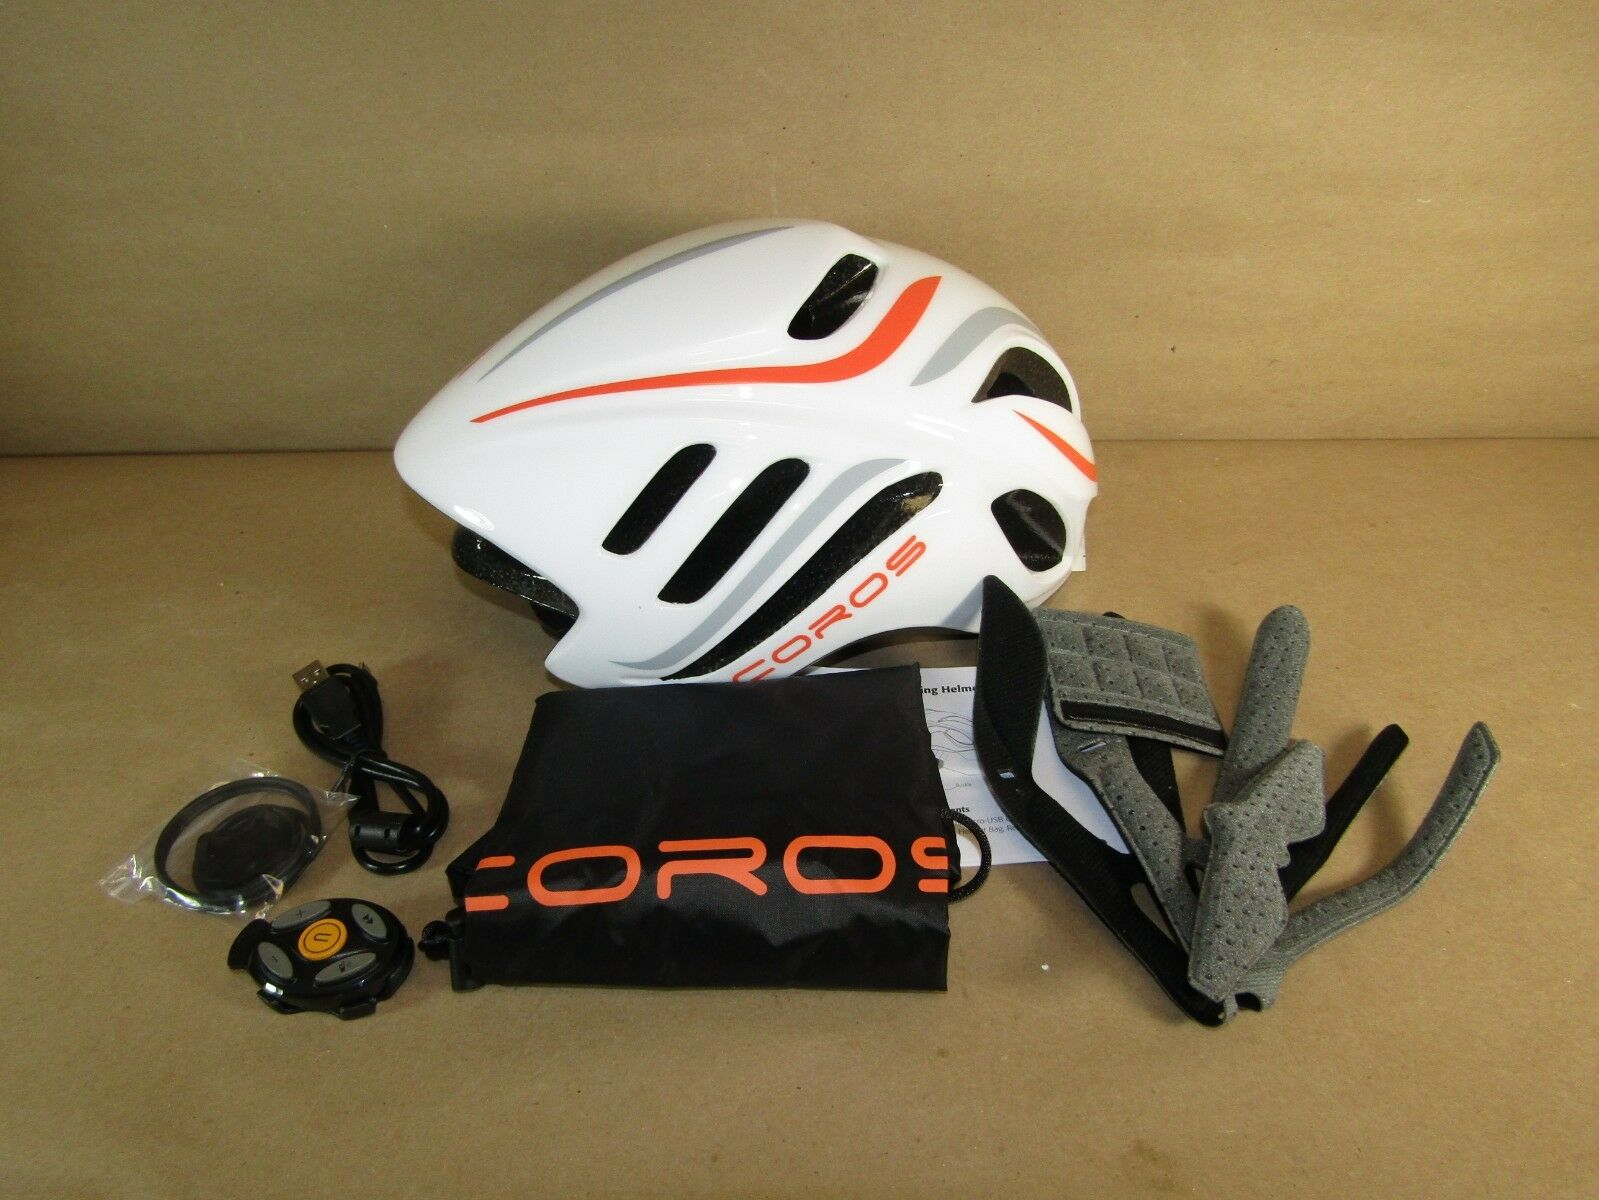 Cgolds  LINX Smart Cycling Helmet w Bone Conducting Audio, Size Large (L)  find your favorite here